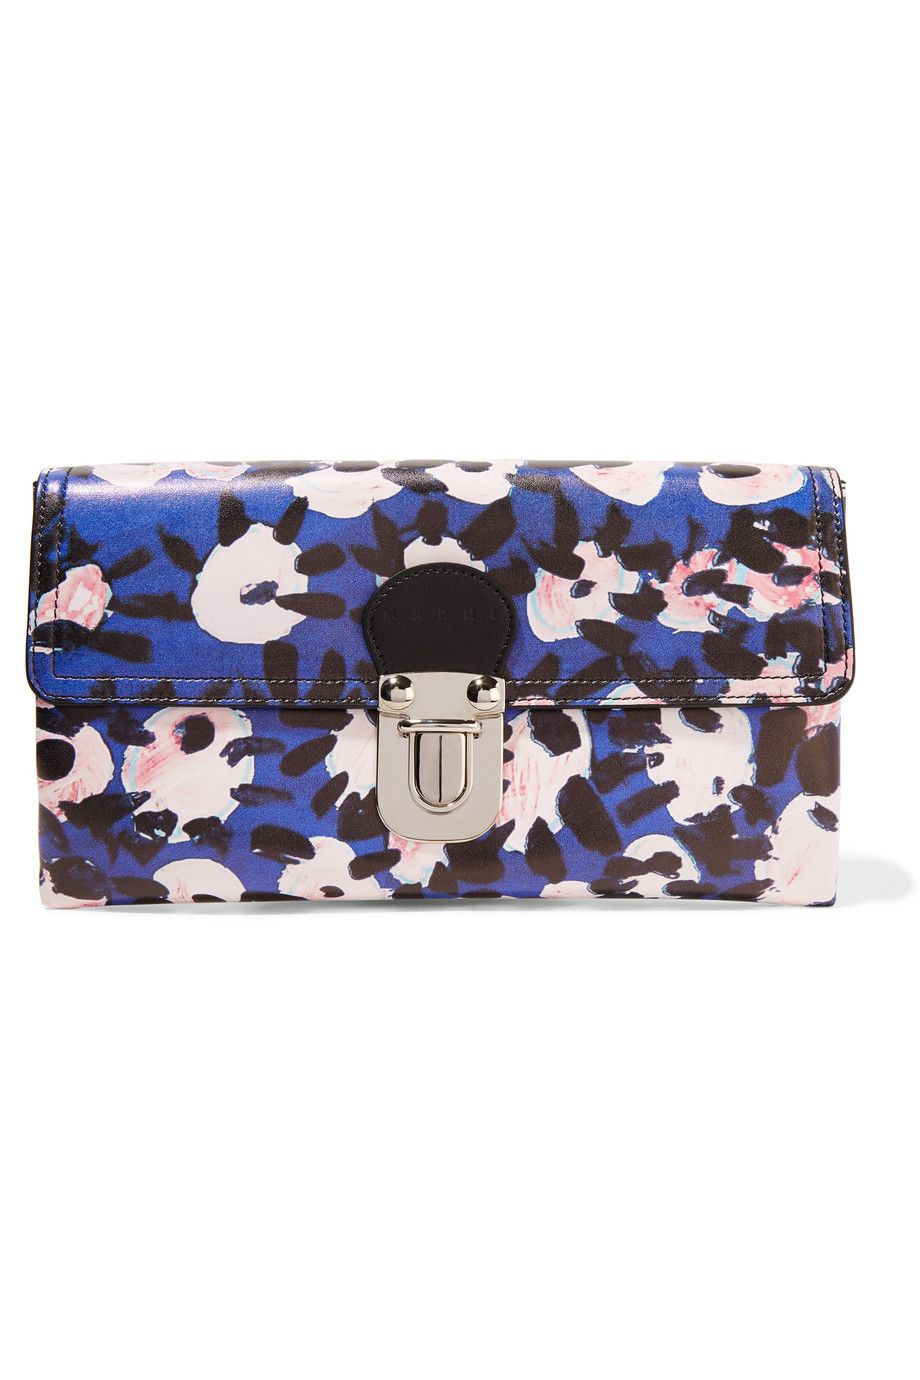 MARNI Printed Leather Clutch. #marni #bags #leather #clutch #lace #hand bags #